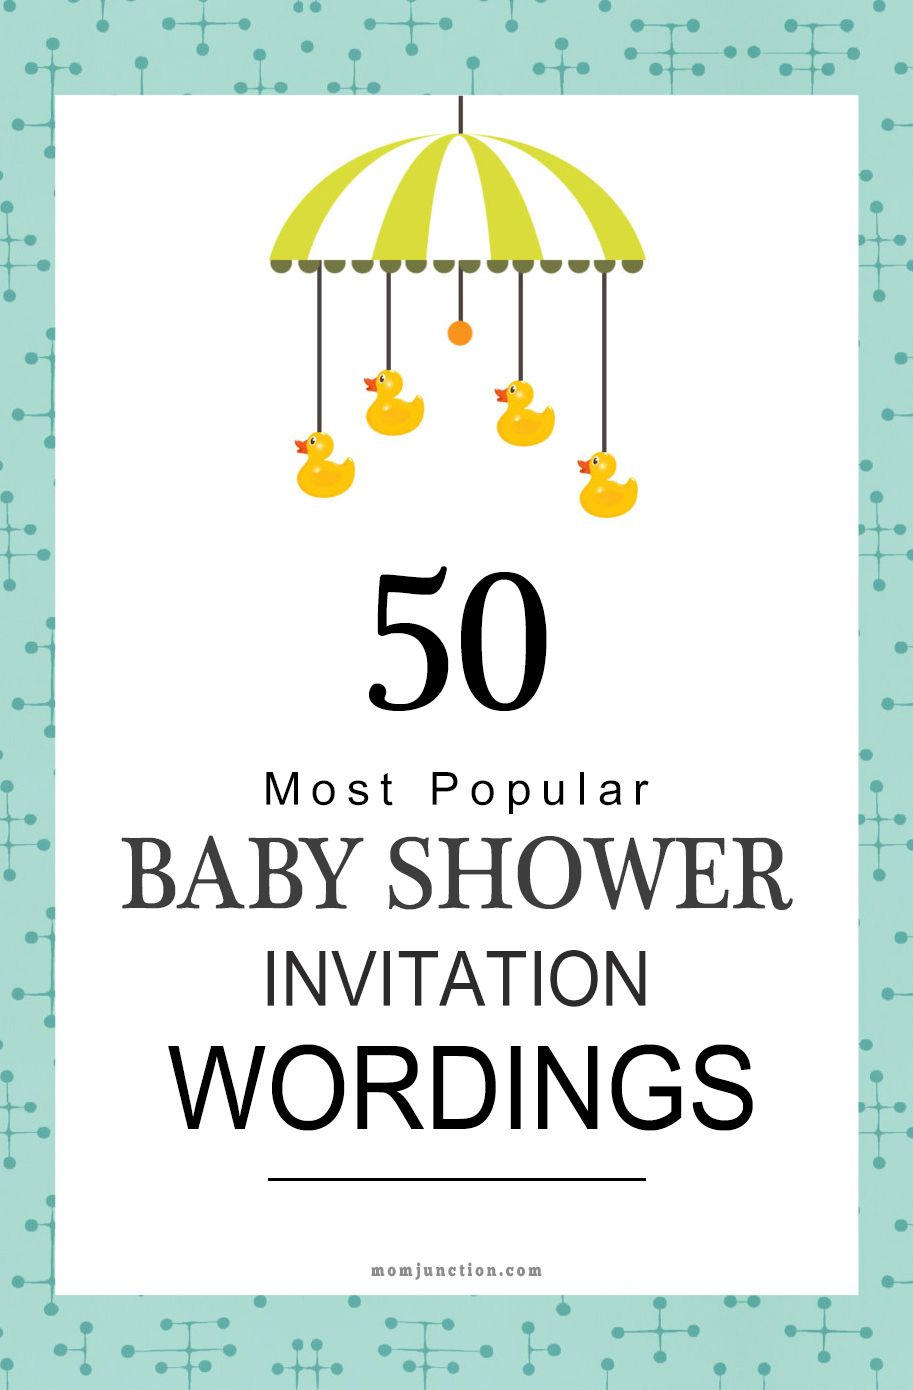 21 coed baby shower invitation wording examples messages and 21 coed baby shower invitation wording examples messages and communication pinterest shower invitations 21st and babies filmwisefo